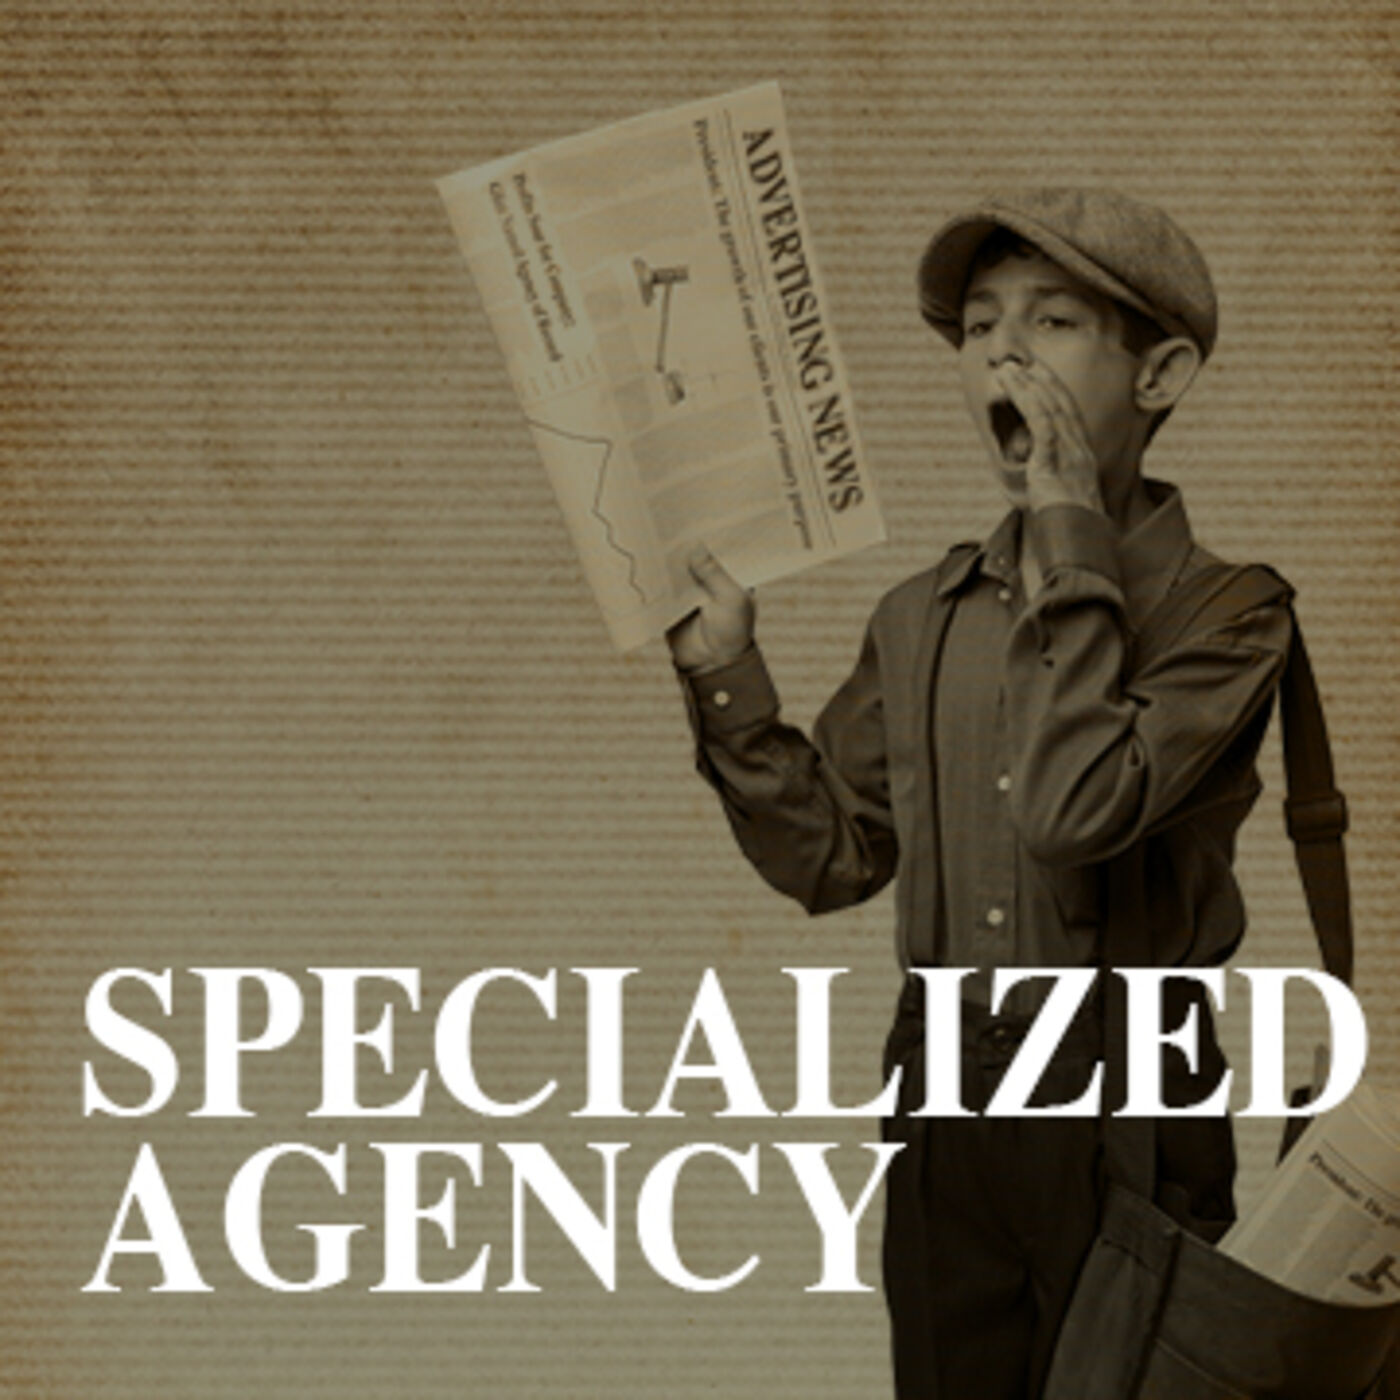 Specialized Agency vs Typical Agency - The Glint Standard